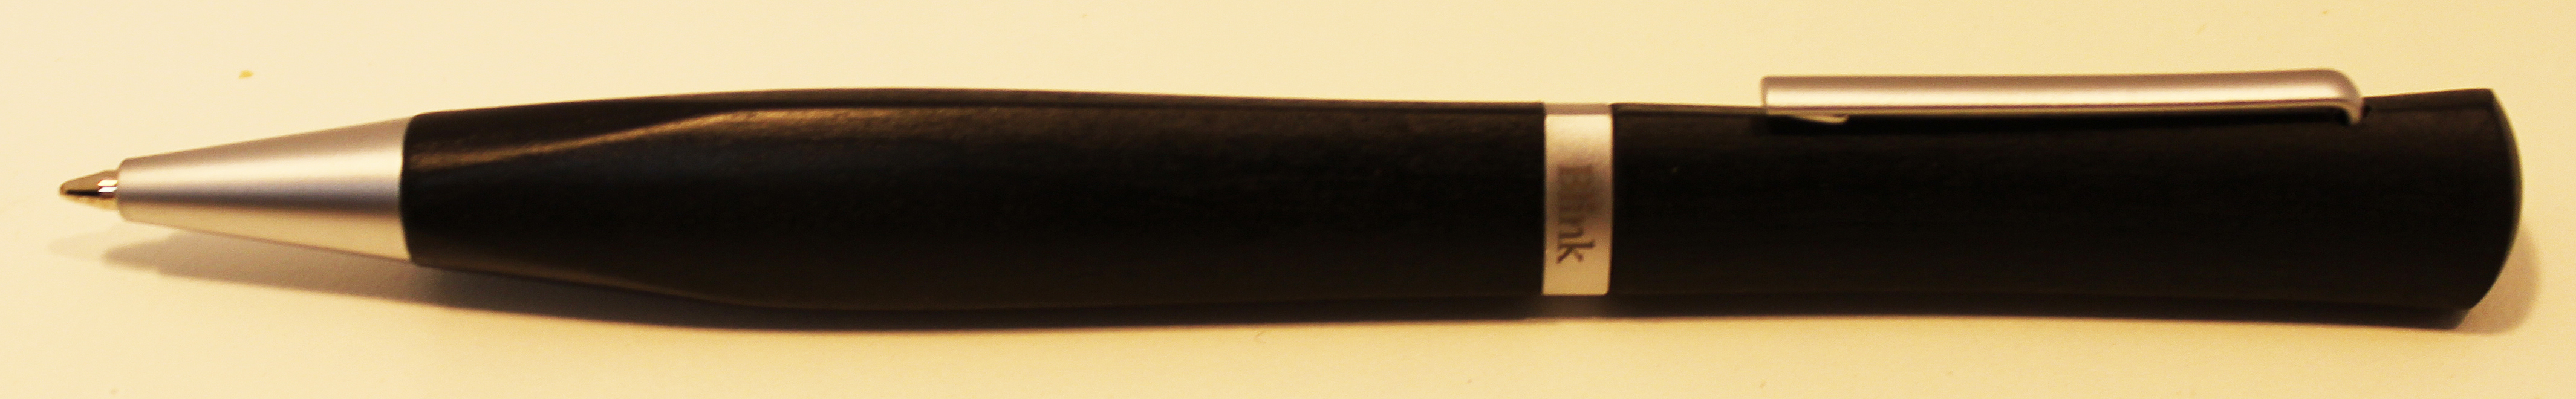 12 Twist Regal Rollerball Pen by The Elements